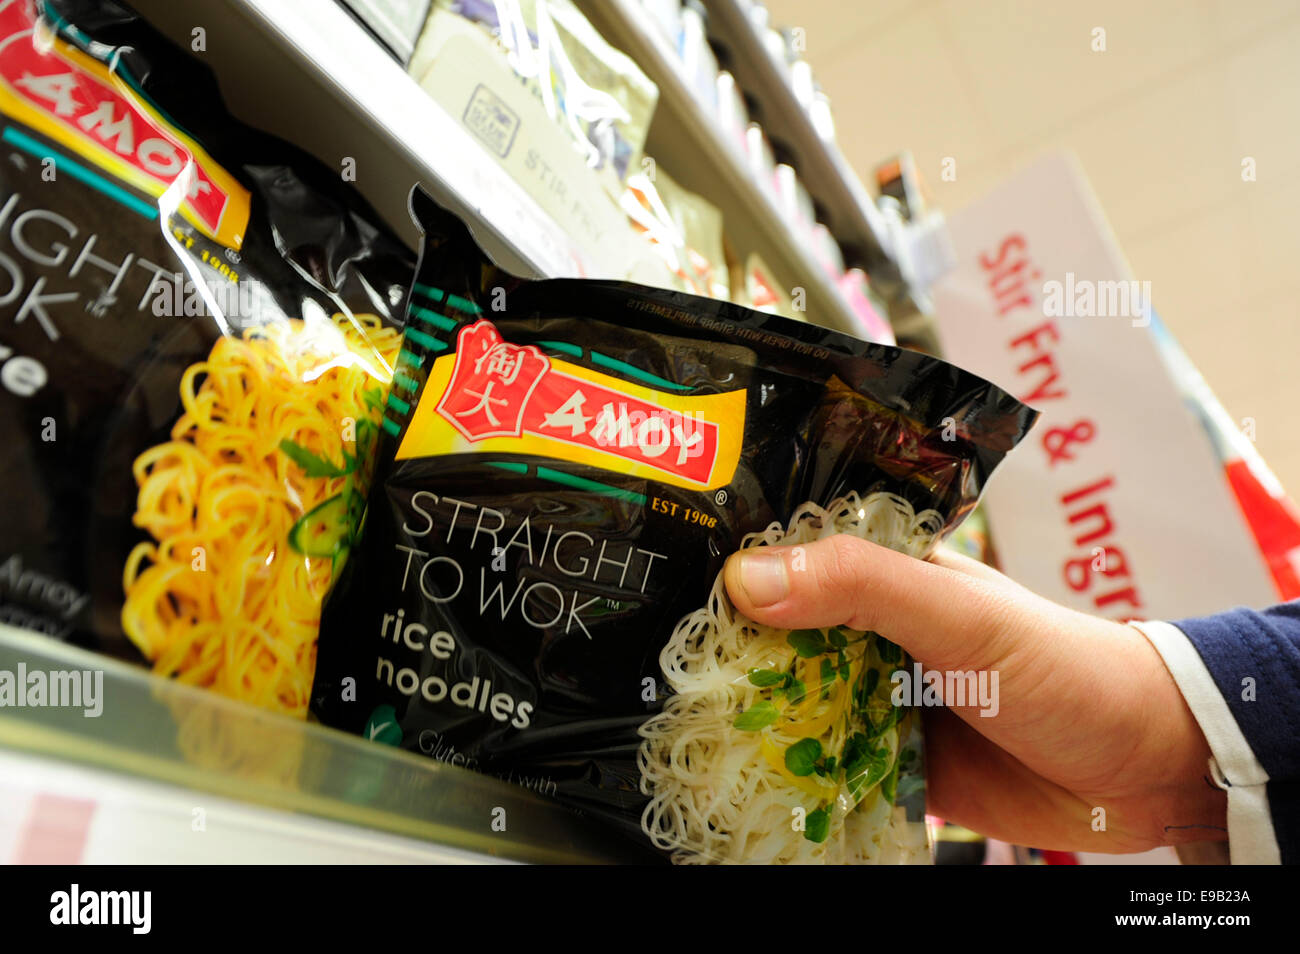 amoy product been taken from the shelf (Newscast)(Model Released) - Stock Image